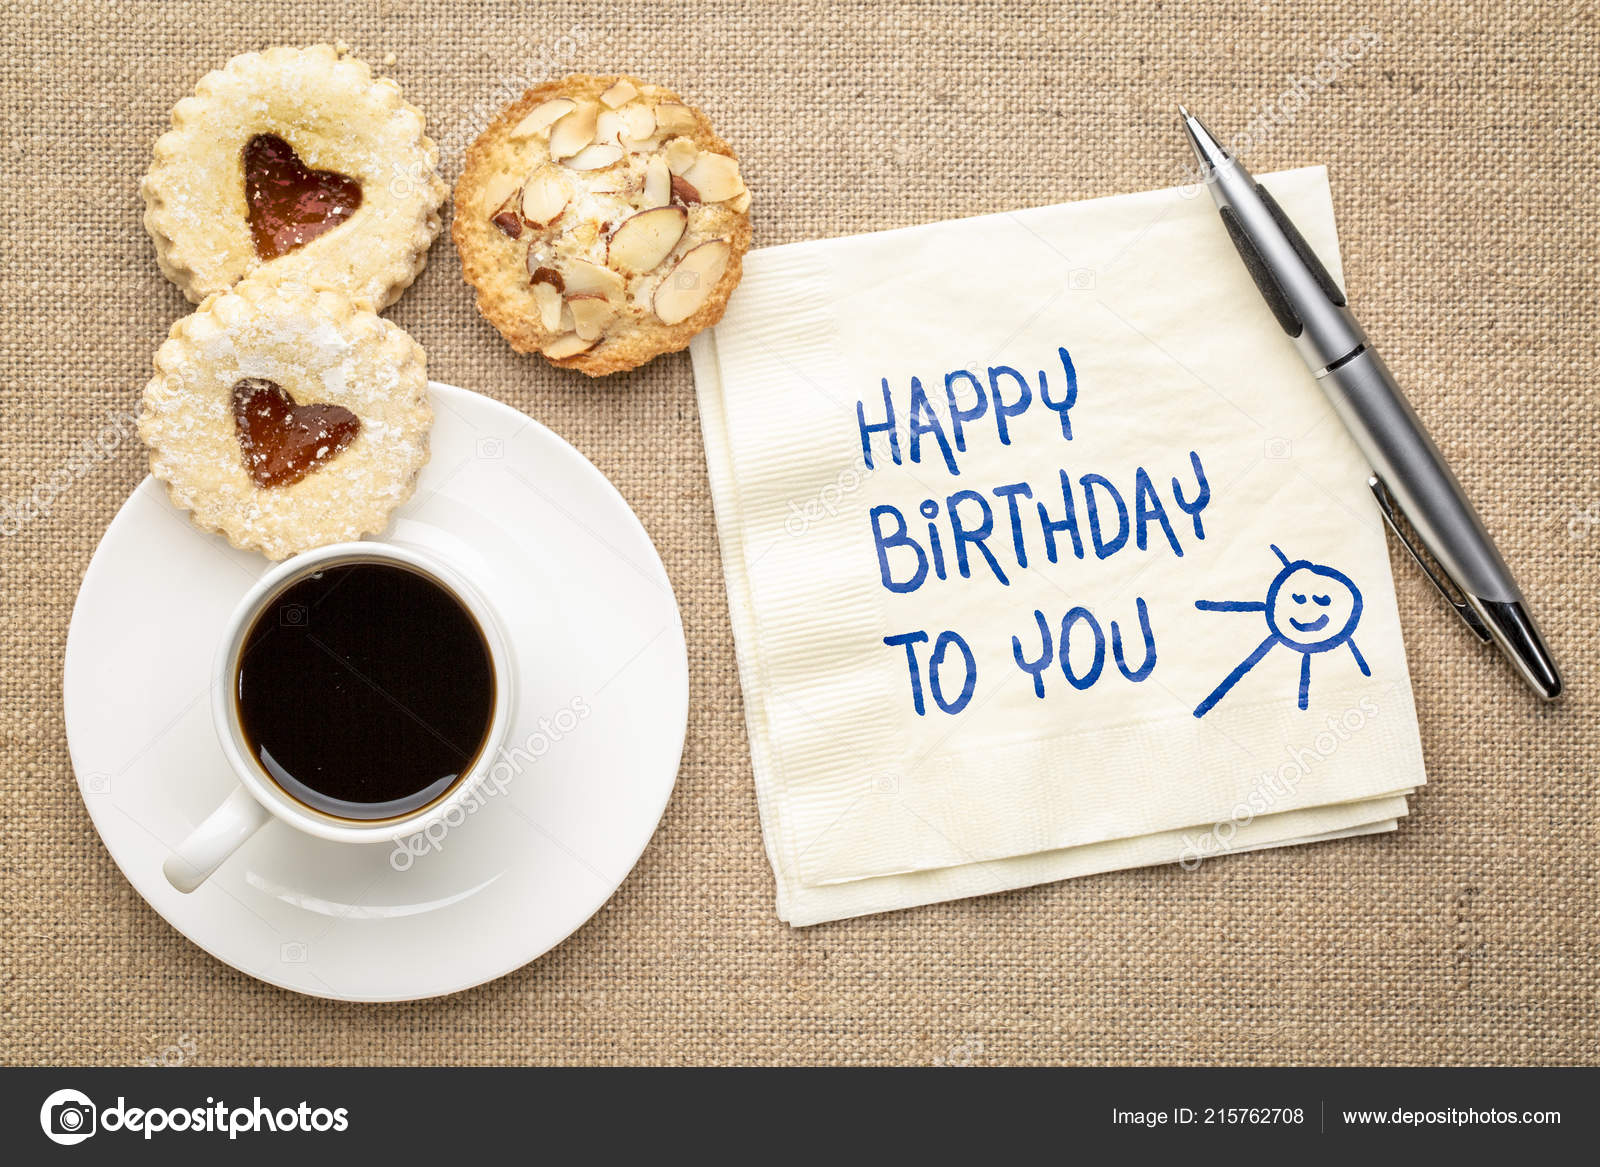 Happy Birthday You Greeting Card Handwriting Napkin Cup Coffee Cookies Stock Photo Image By C Pixelsaway 215762708